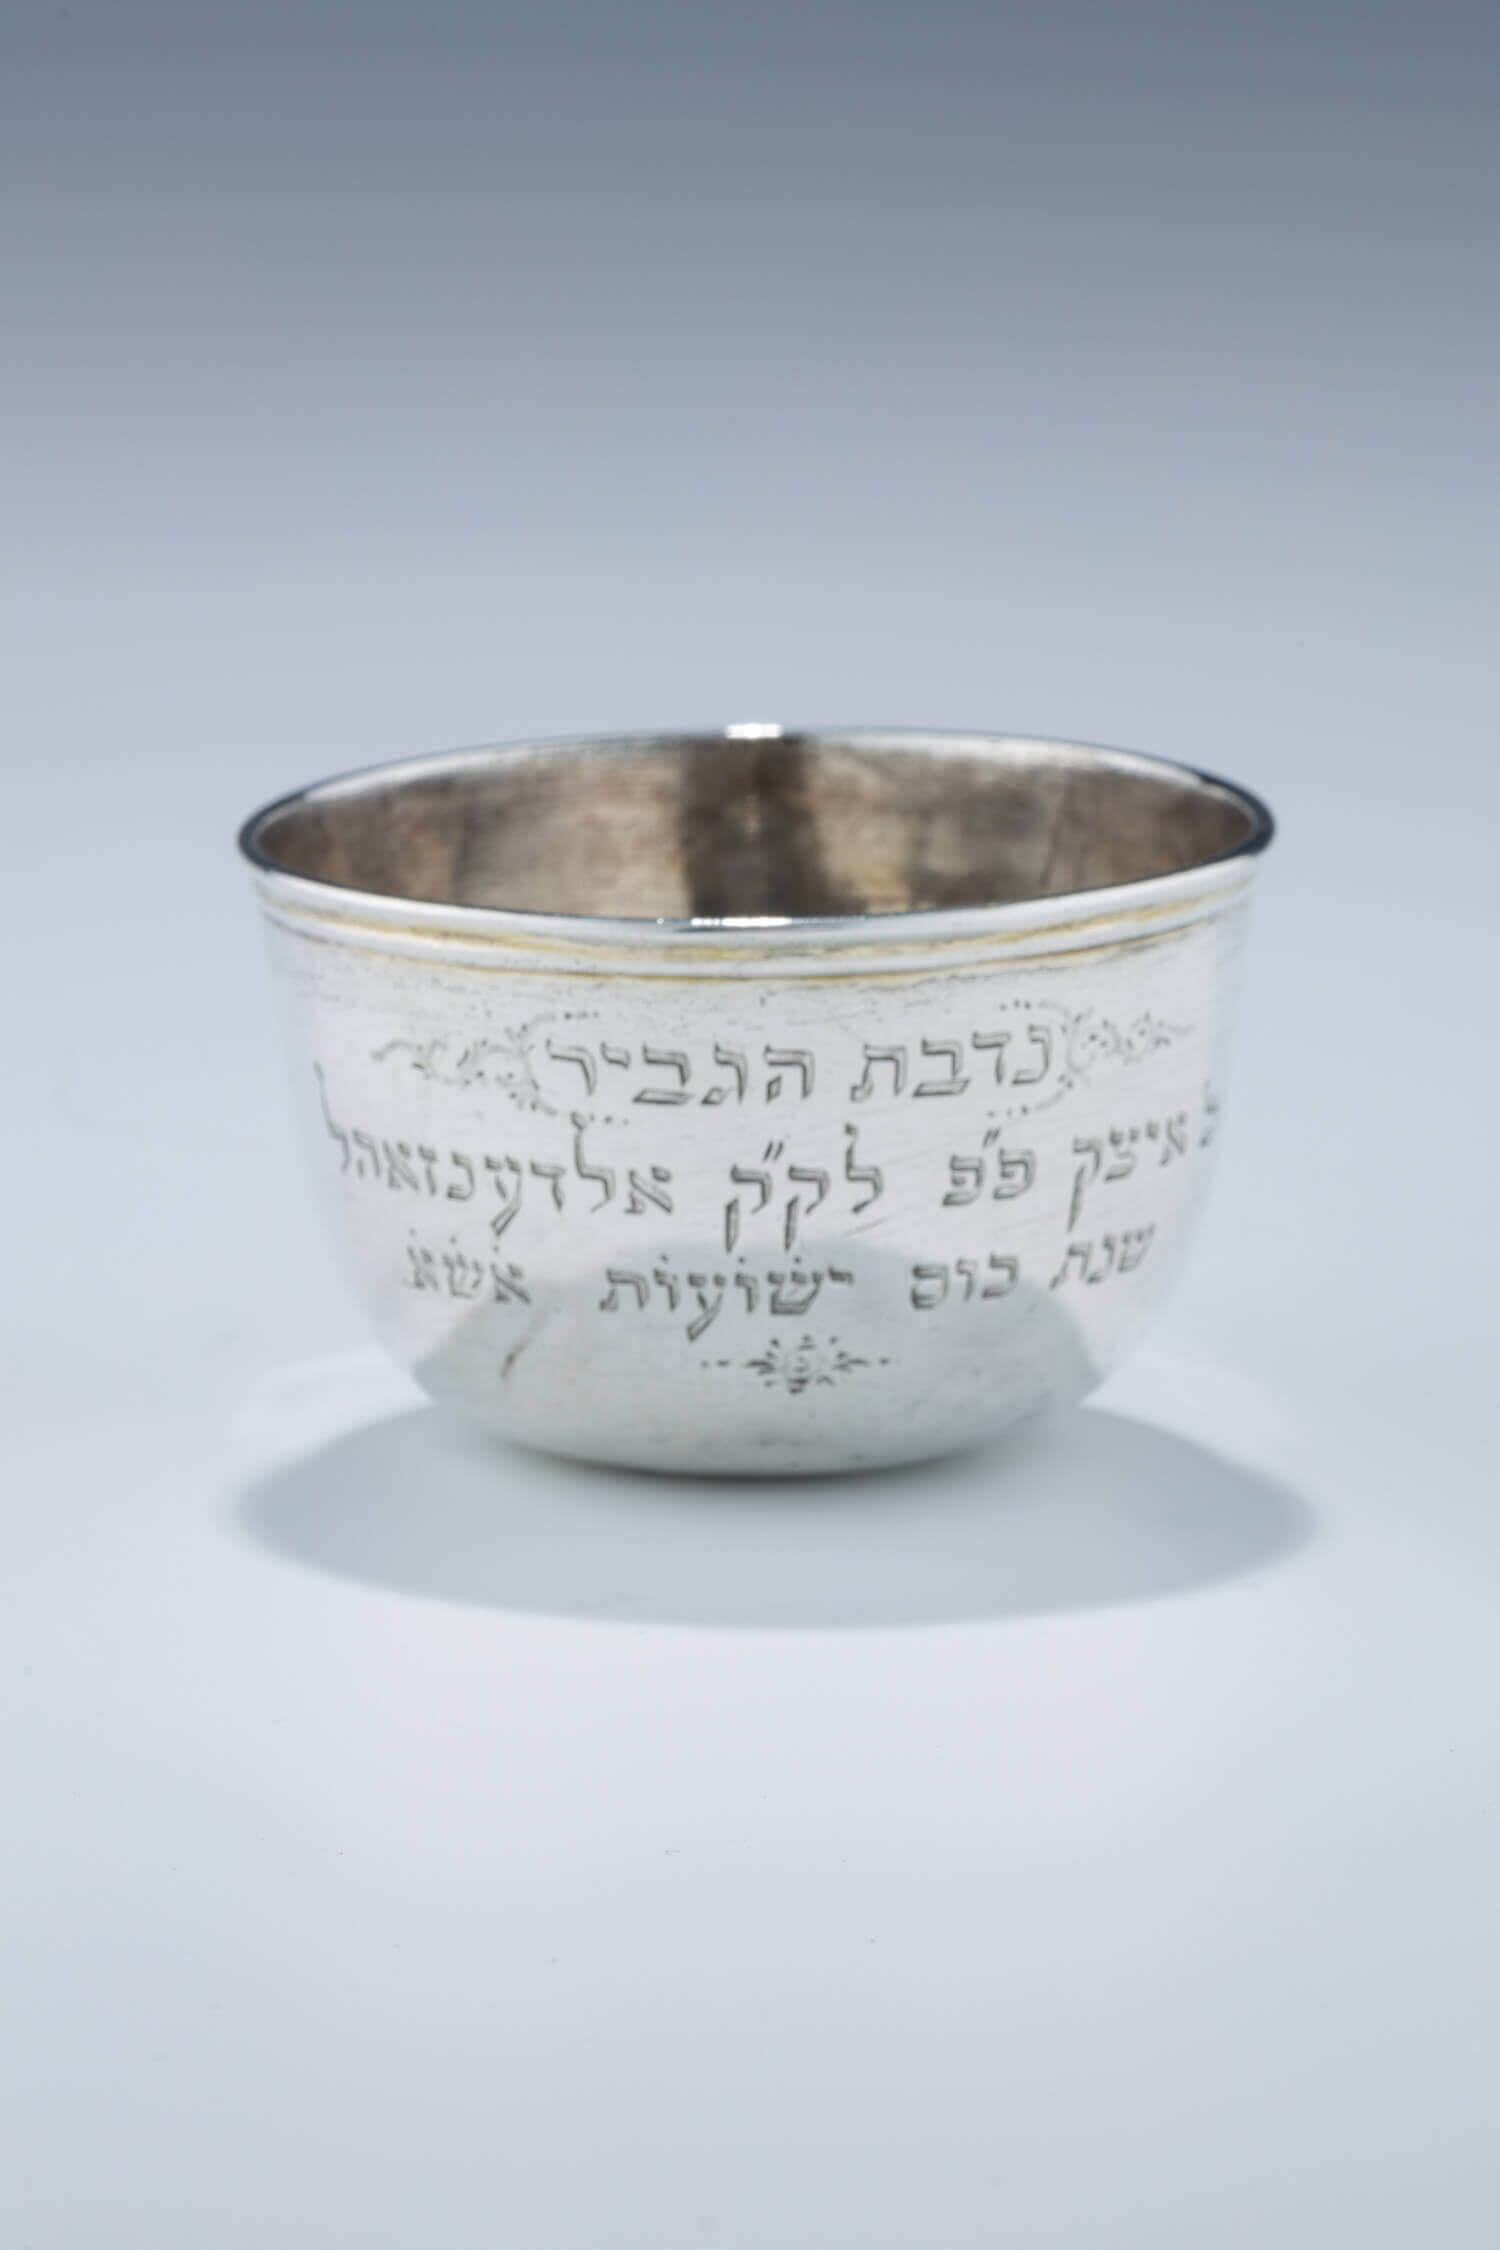 080. A RARE SILVER KIDDUSH CUP OF DUTCH (Oldenzaal) INTEREST